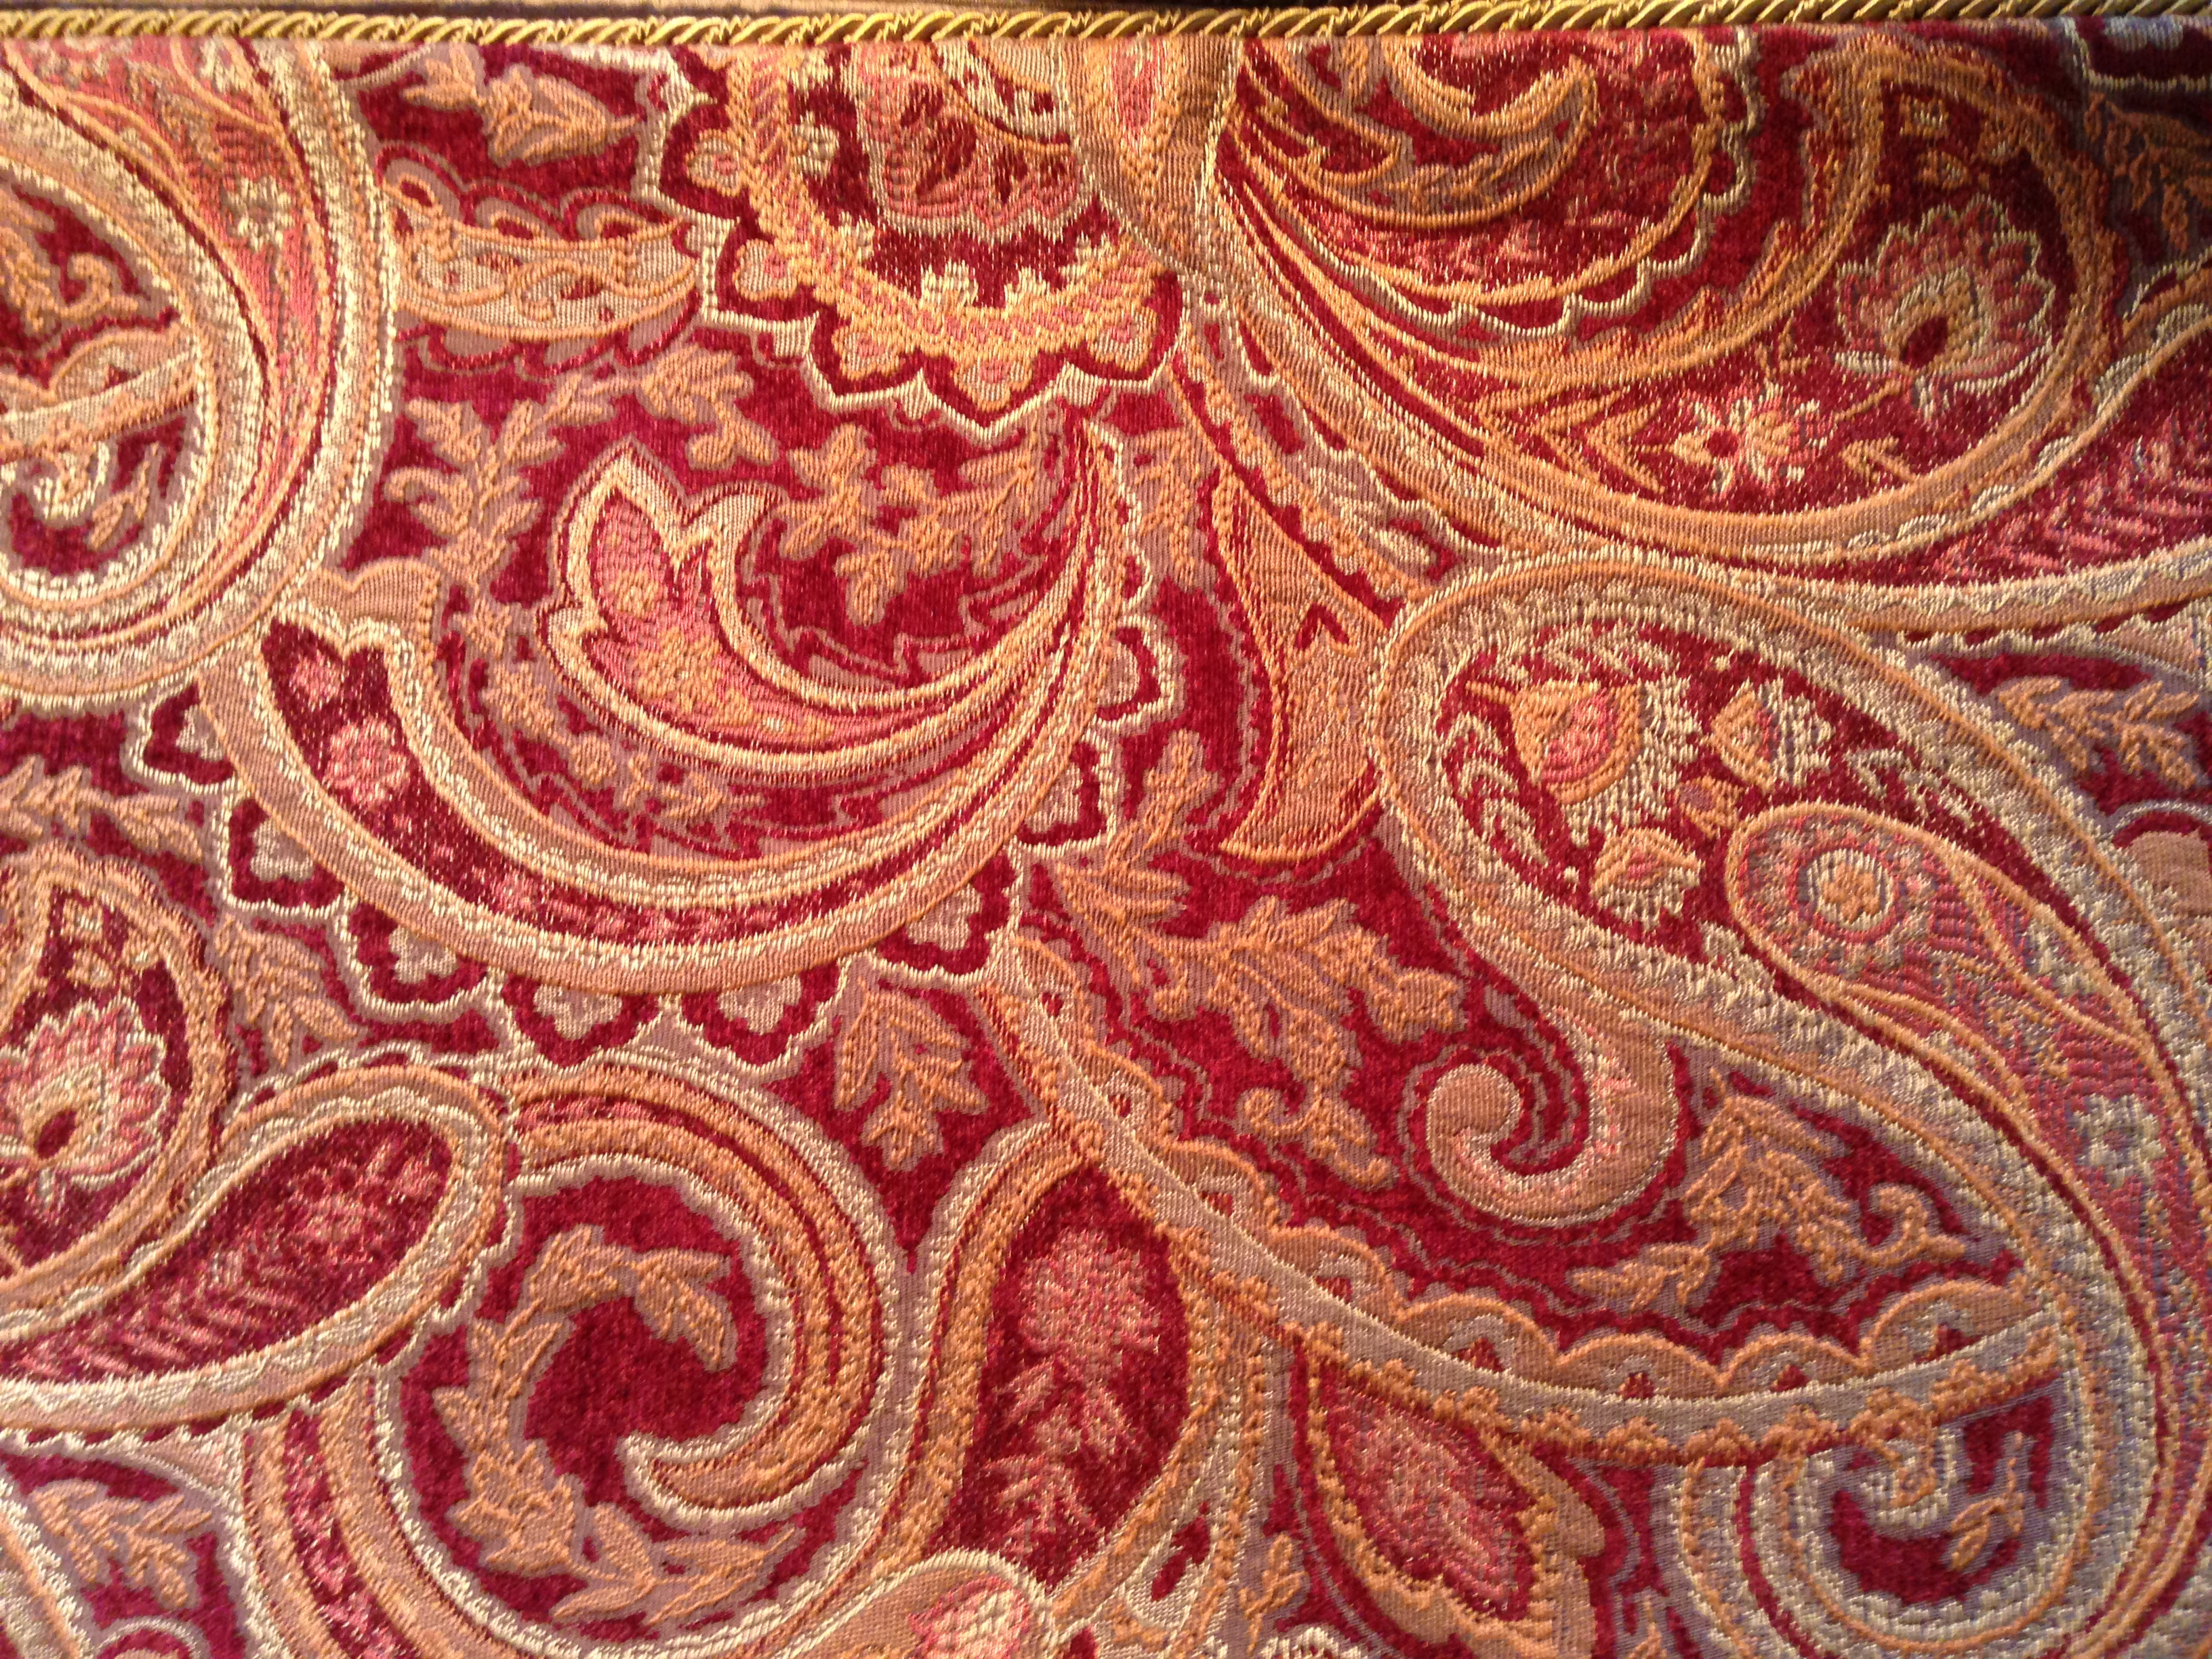 F-22 Red Gold Paisley